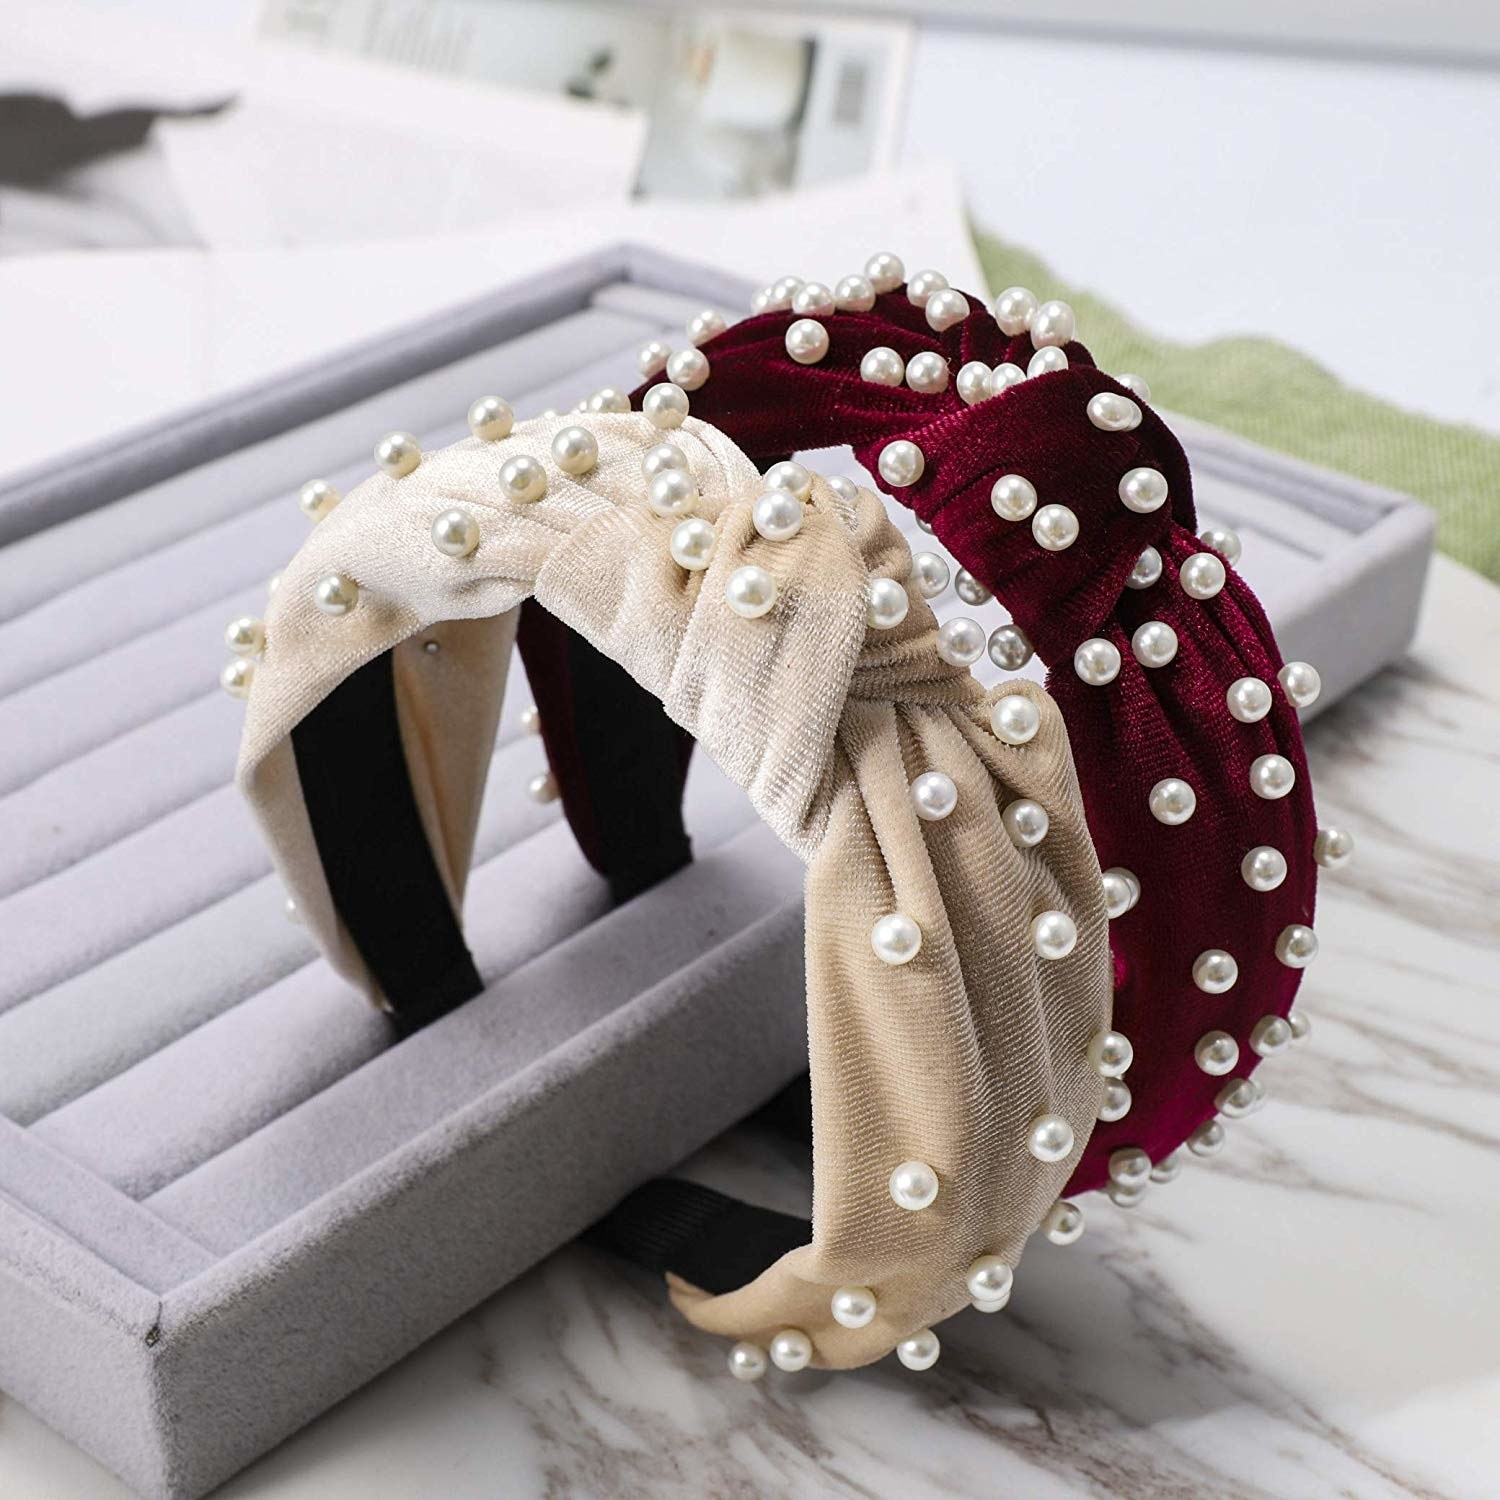 velvet headbands with knot on top, faux pearls sewn on it